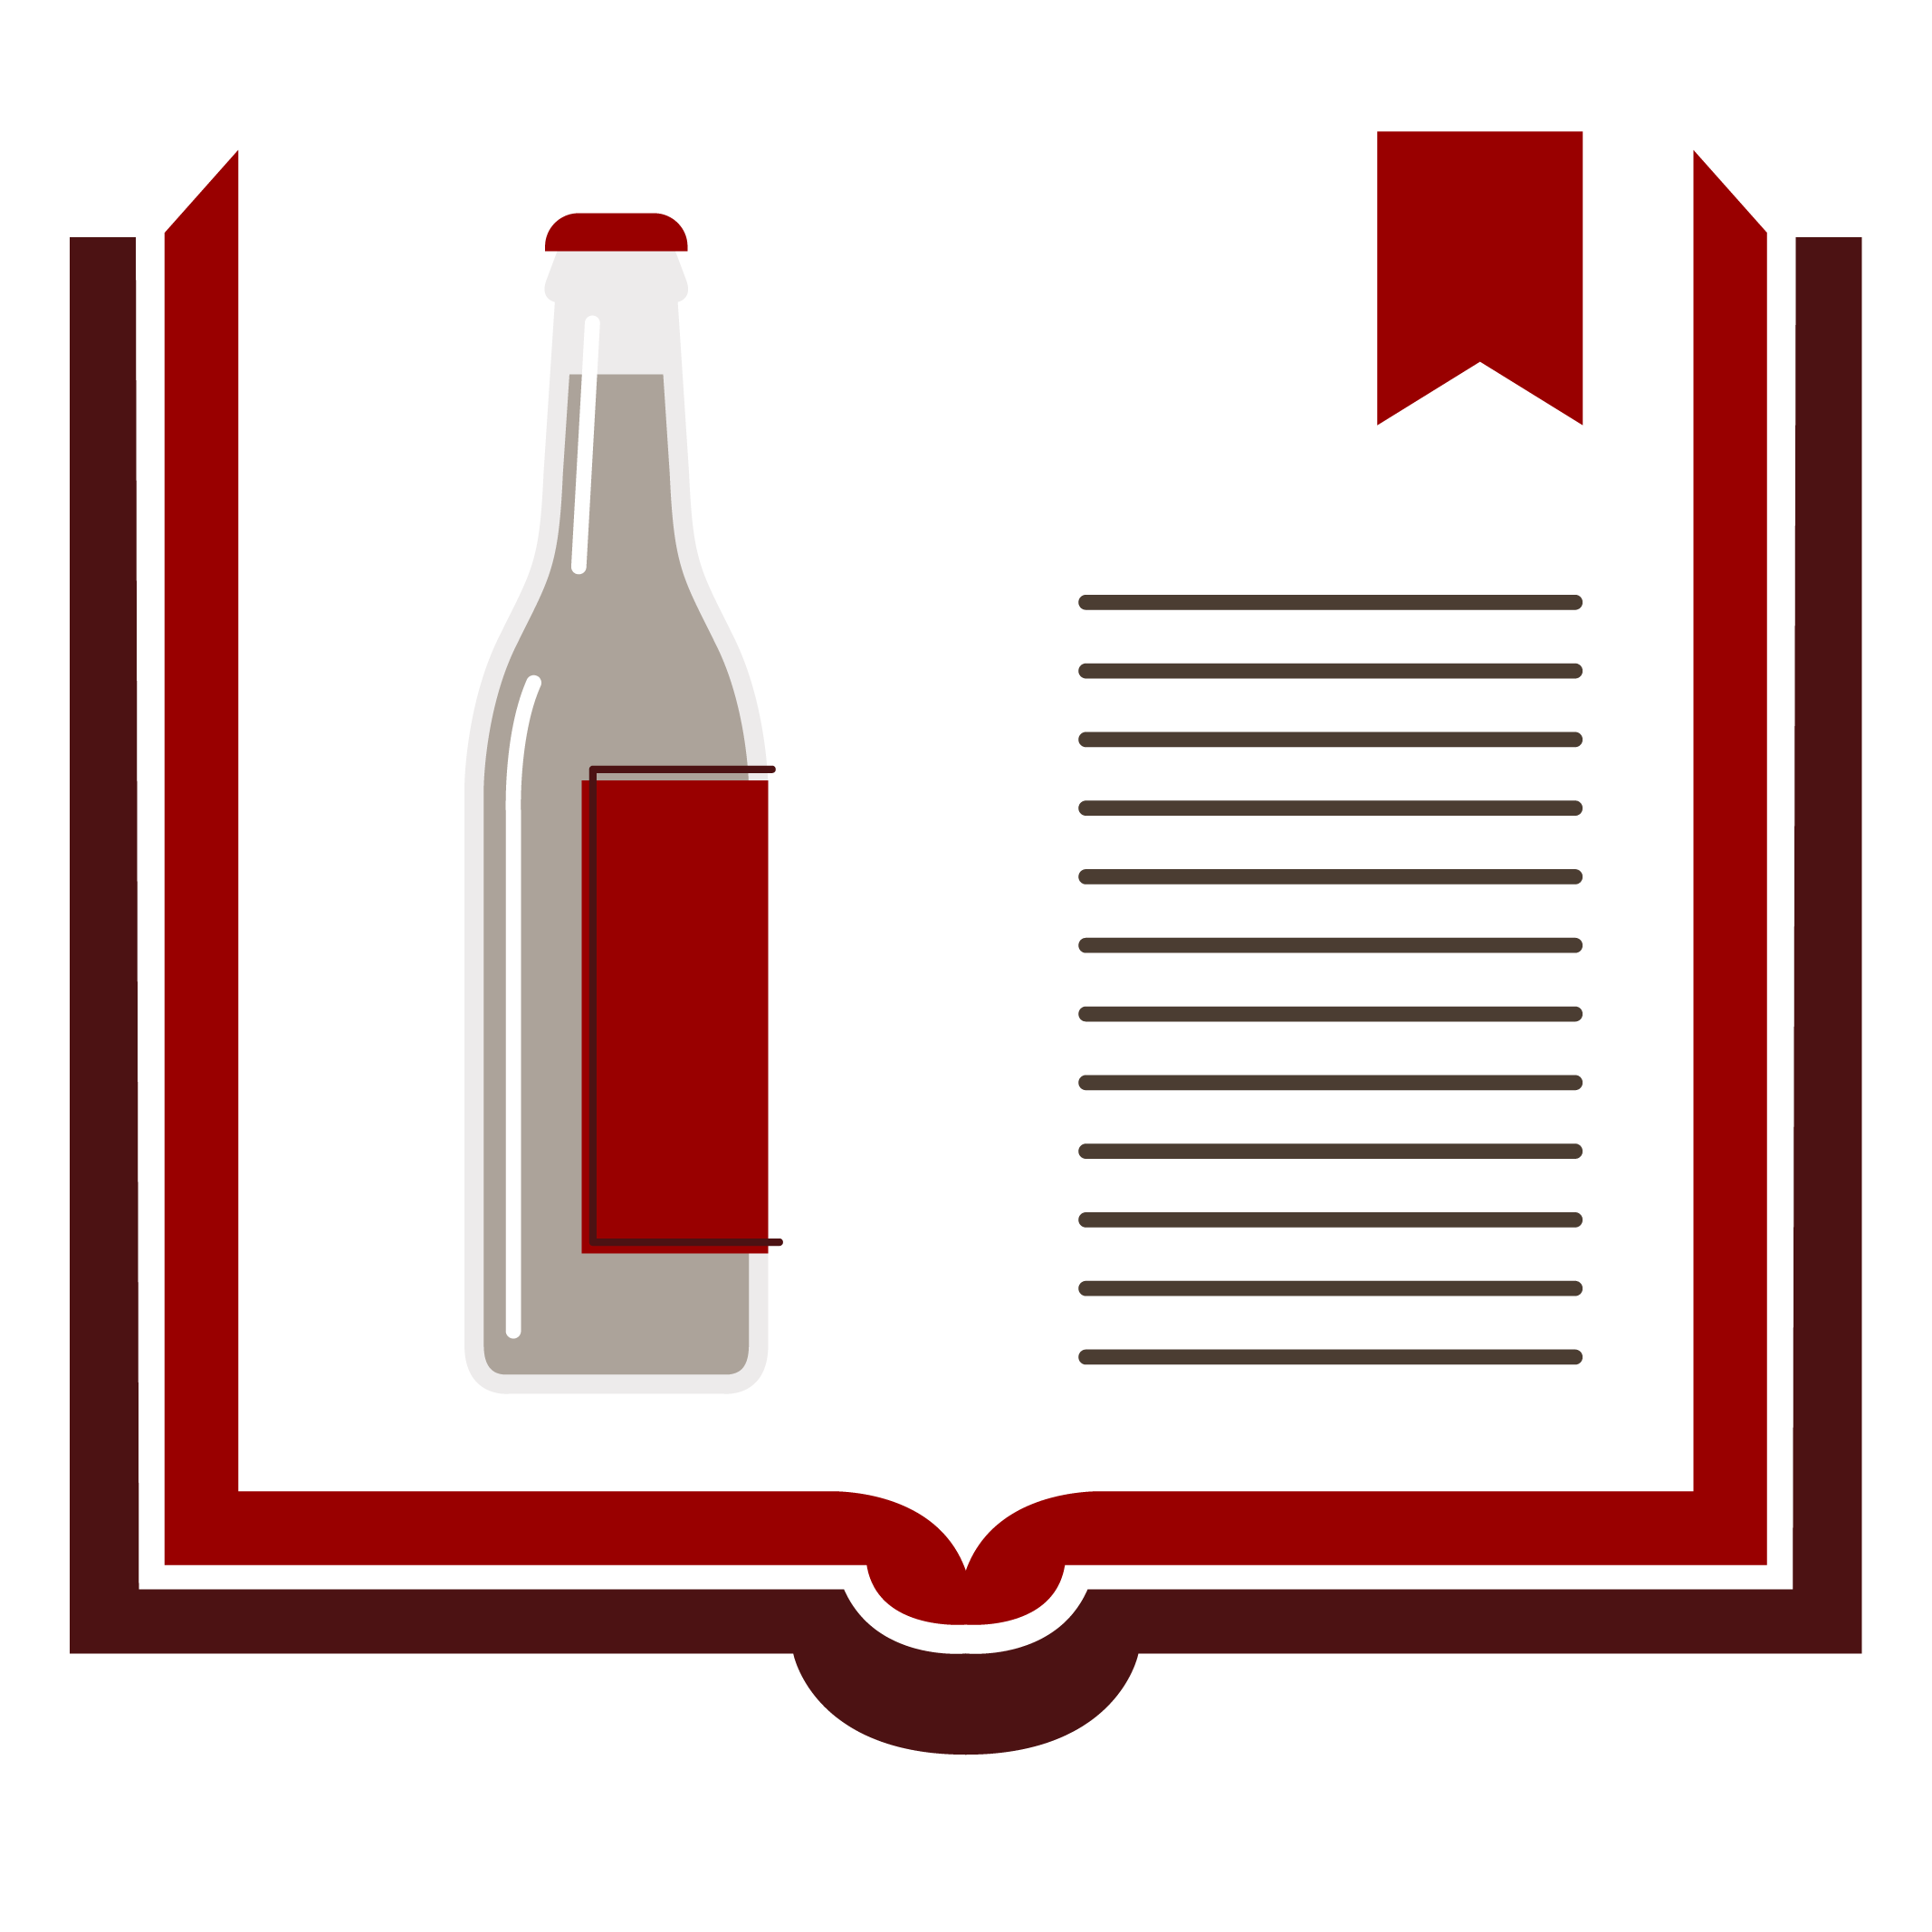 Illustration of open book with icon of alcohol bottle on page